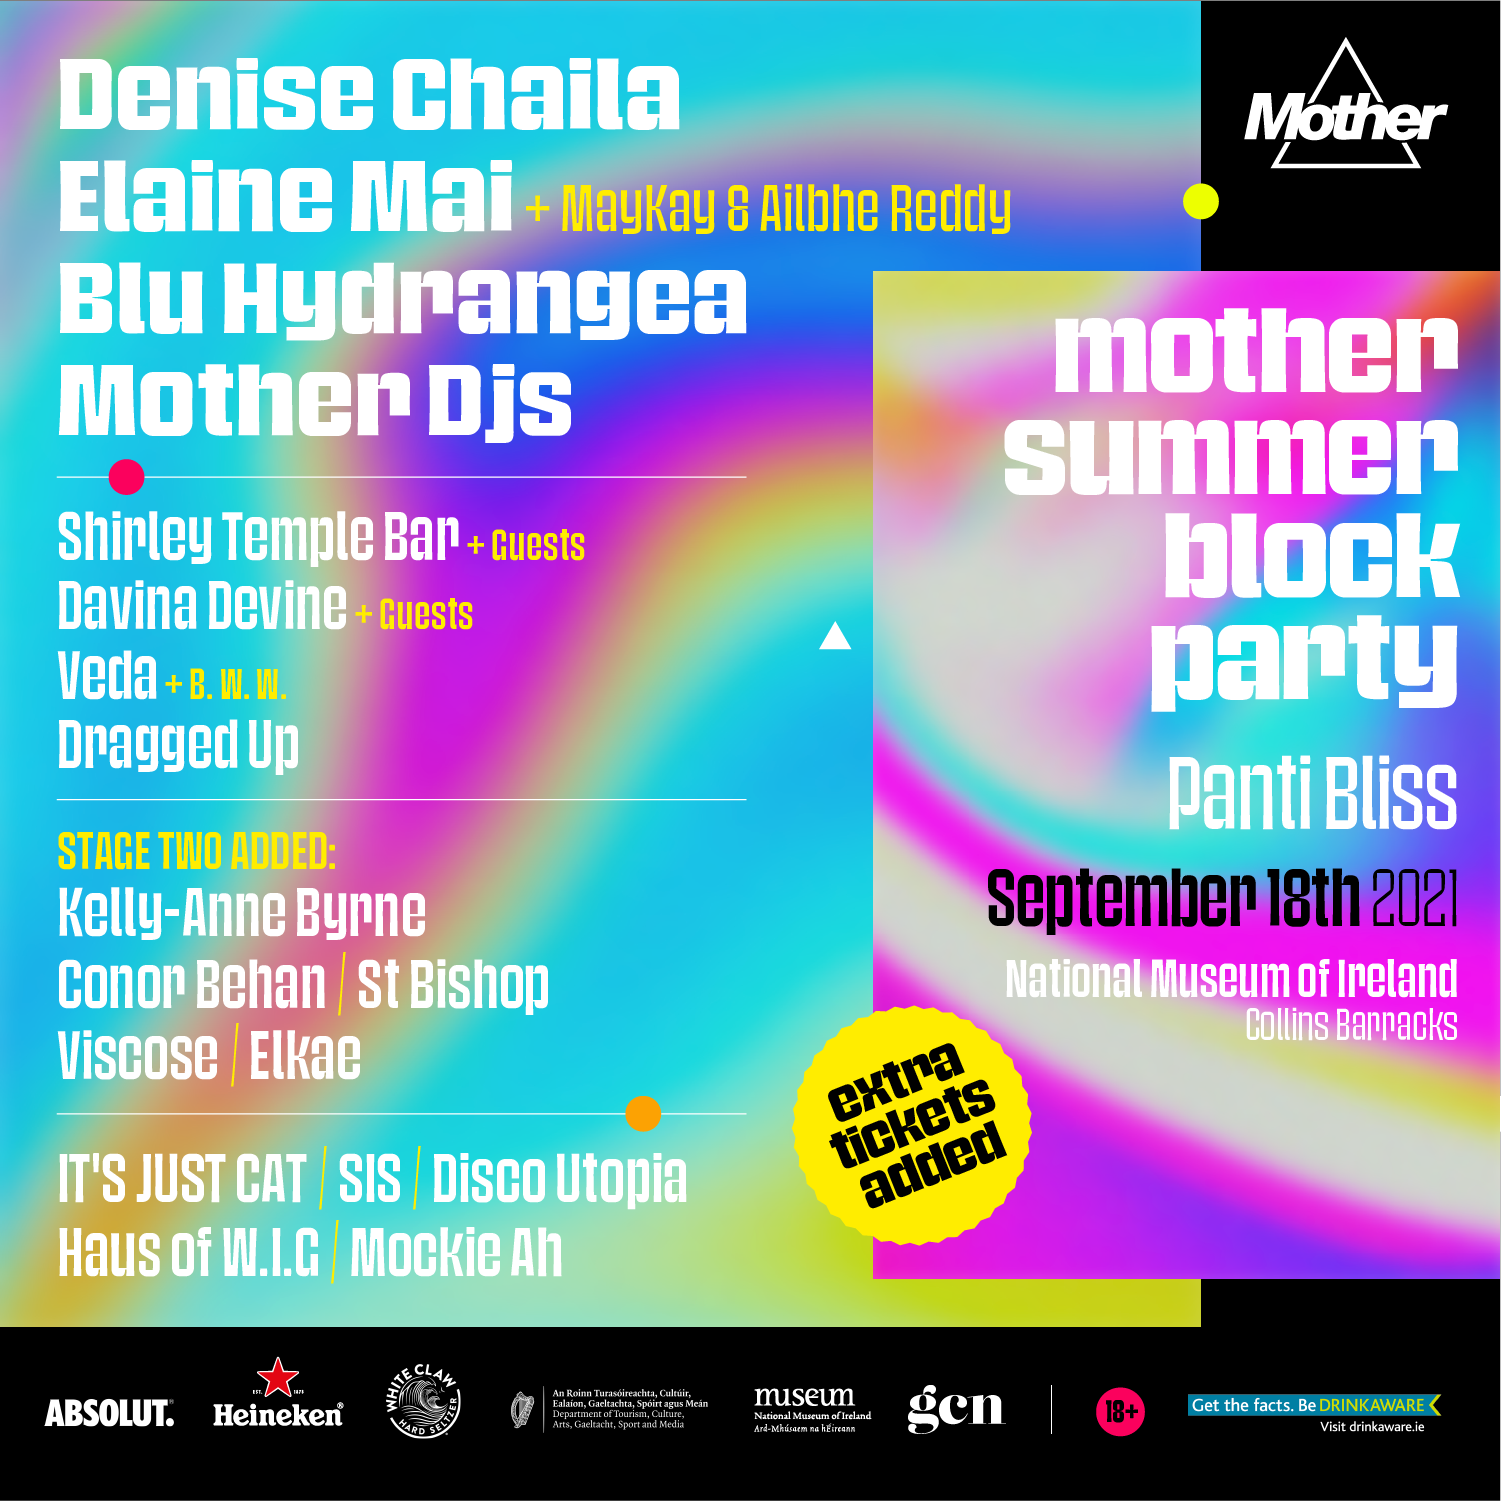 A return to festivals, as Mother presents their sensational Summer Block Party.   Celebrating the best in Queer and Irish talent, this end-of-summer block party is the first BIG bash of 2021!